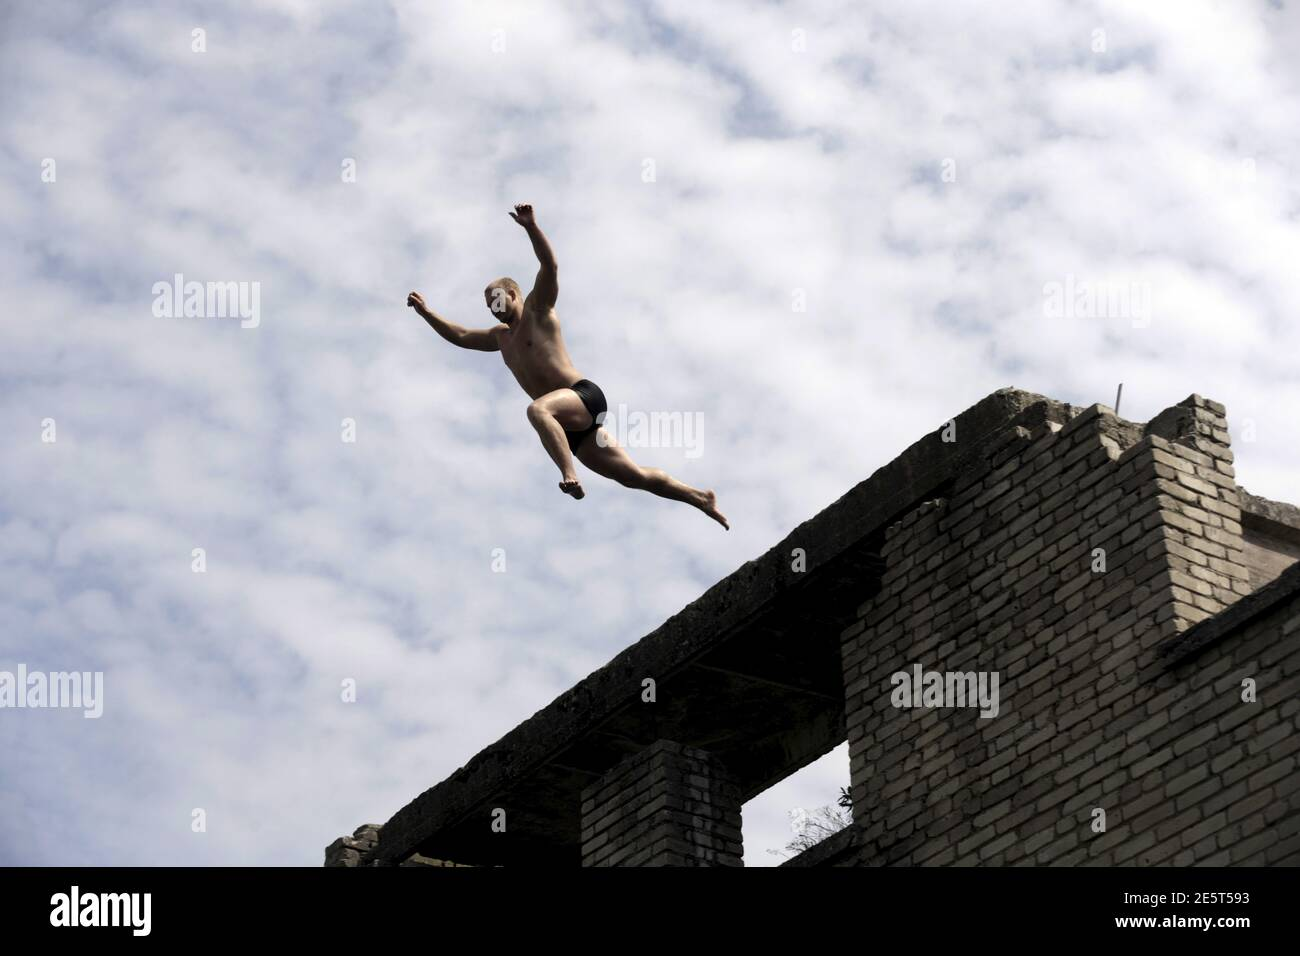 A man jumps into water from the roof of Murru prison, an abandoned Soviet prison, in Rummu quarry, Estonia, during hot weather July 4, 2015. During the Soviet time, Rummu quarry was used as a mining site for Vasalemma marble and most of the workforce came from among the detainees of Murru prison. When the prison closed after 1991, pumps that once kept the quarry and the prison dry were shut down, causing water to fill the quarry. It has become an unofficial and unguarded swimming and diving spot, attracting locals and tourists. REUTERS/Ints Kalnins Stock Photo